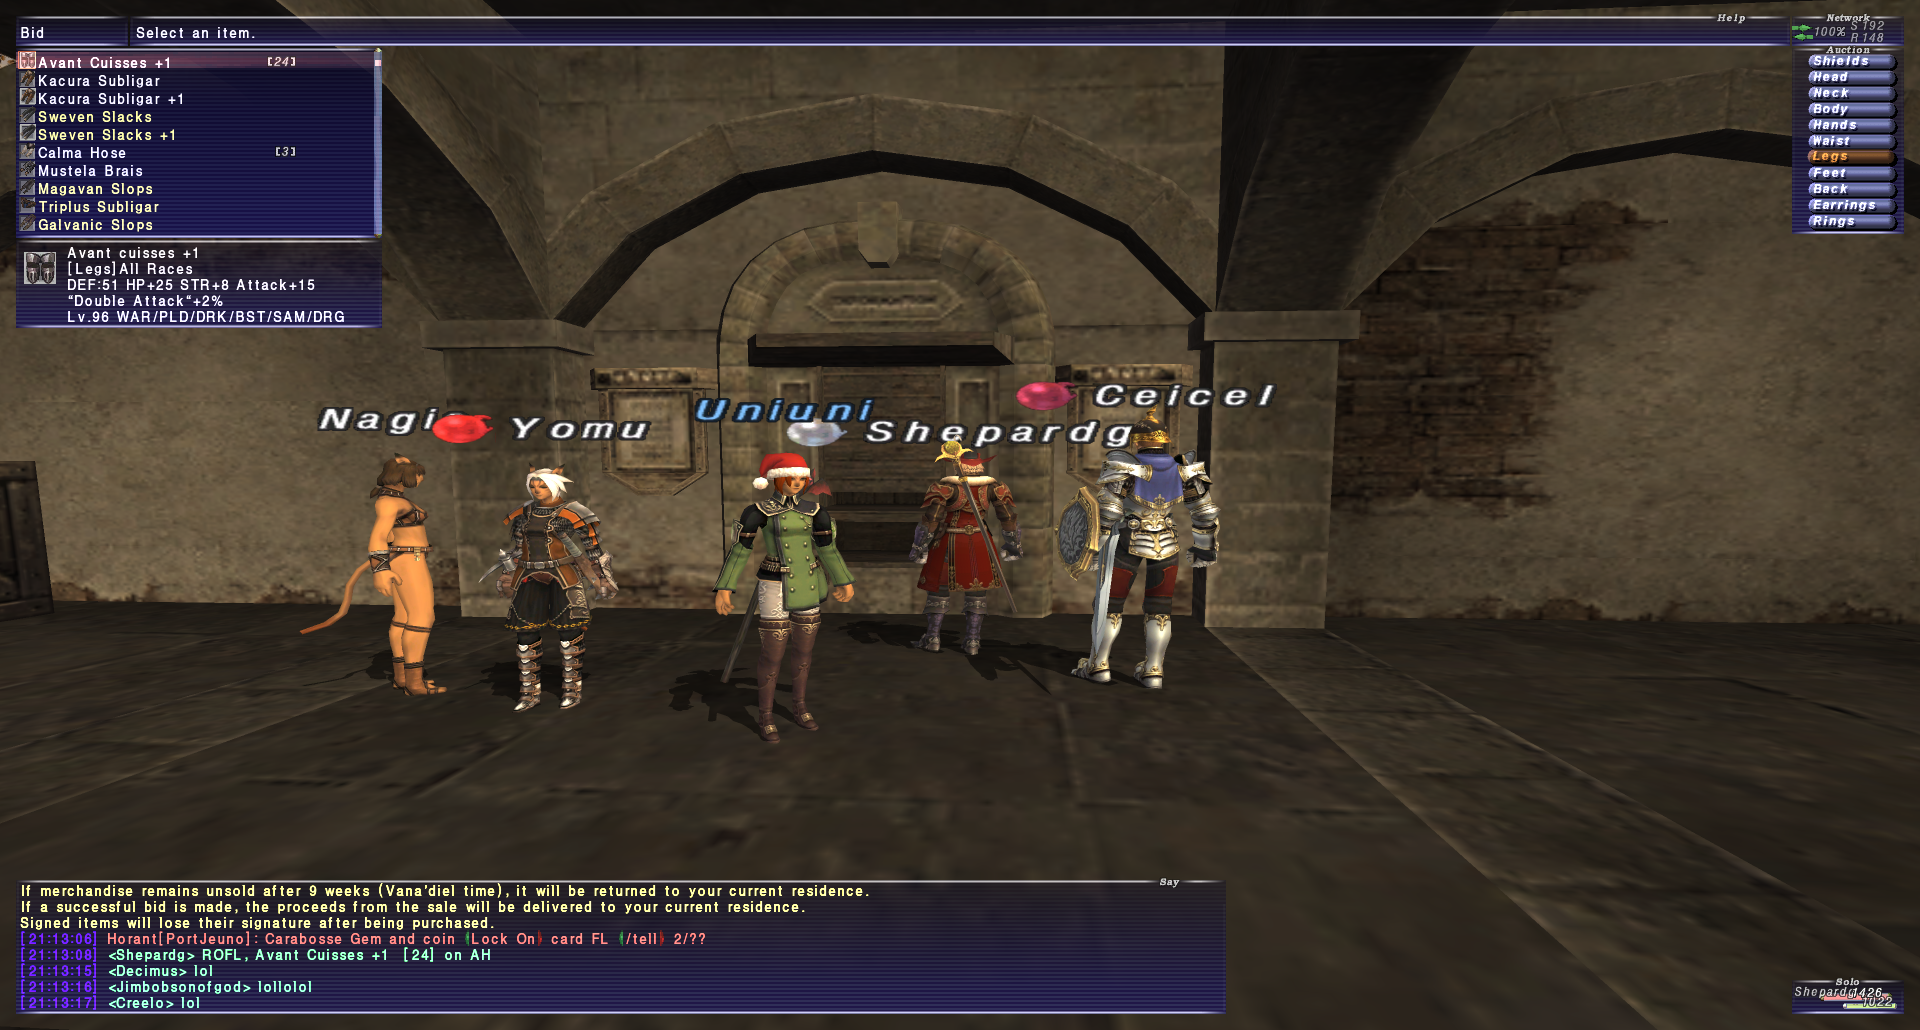 shepardg ffxi fail from ffxiah randomly this spotted thought screenshot pretty before fucking last xiii time talling posted sure random